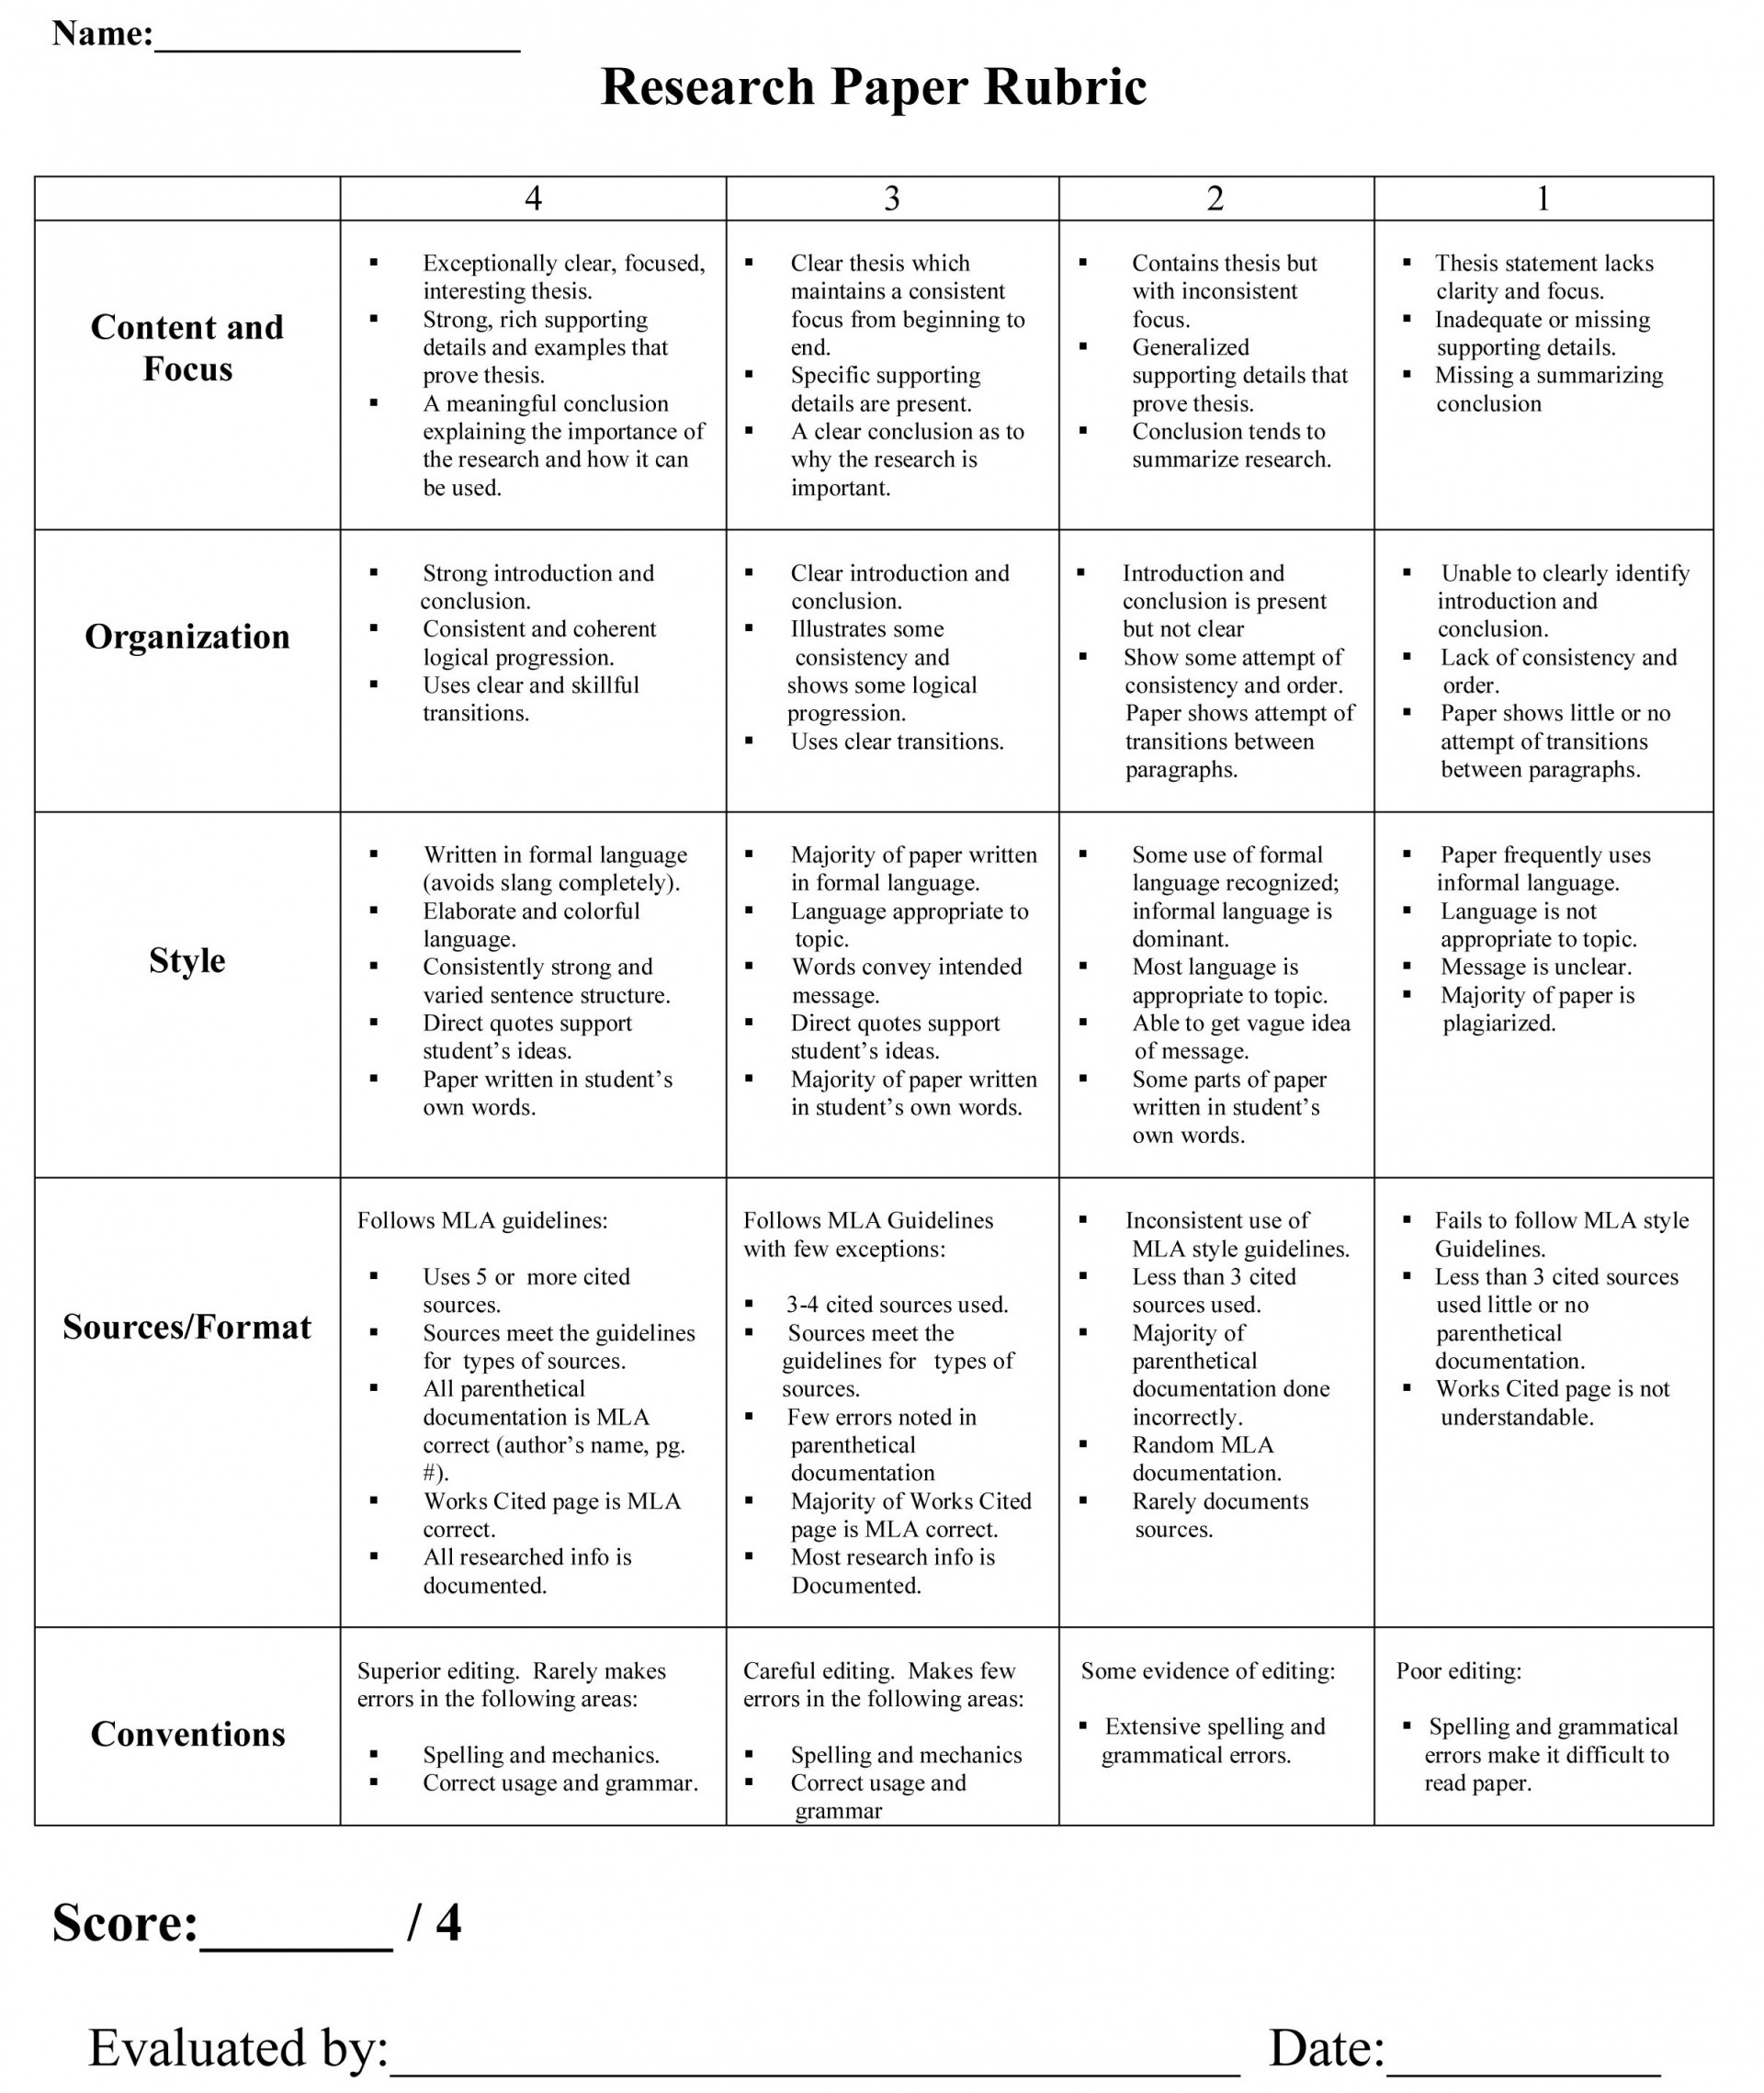 001 Research Paper College Rubric Stupendous Mla 1920